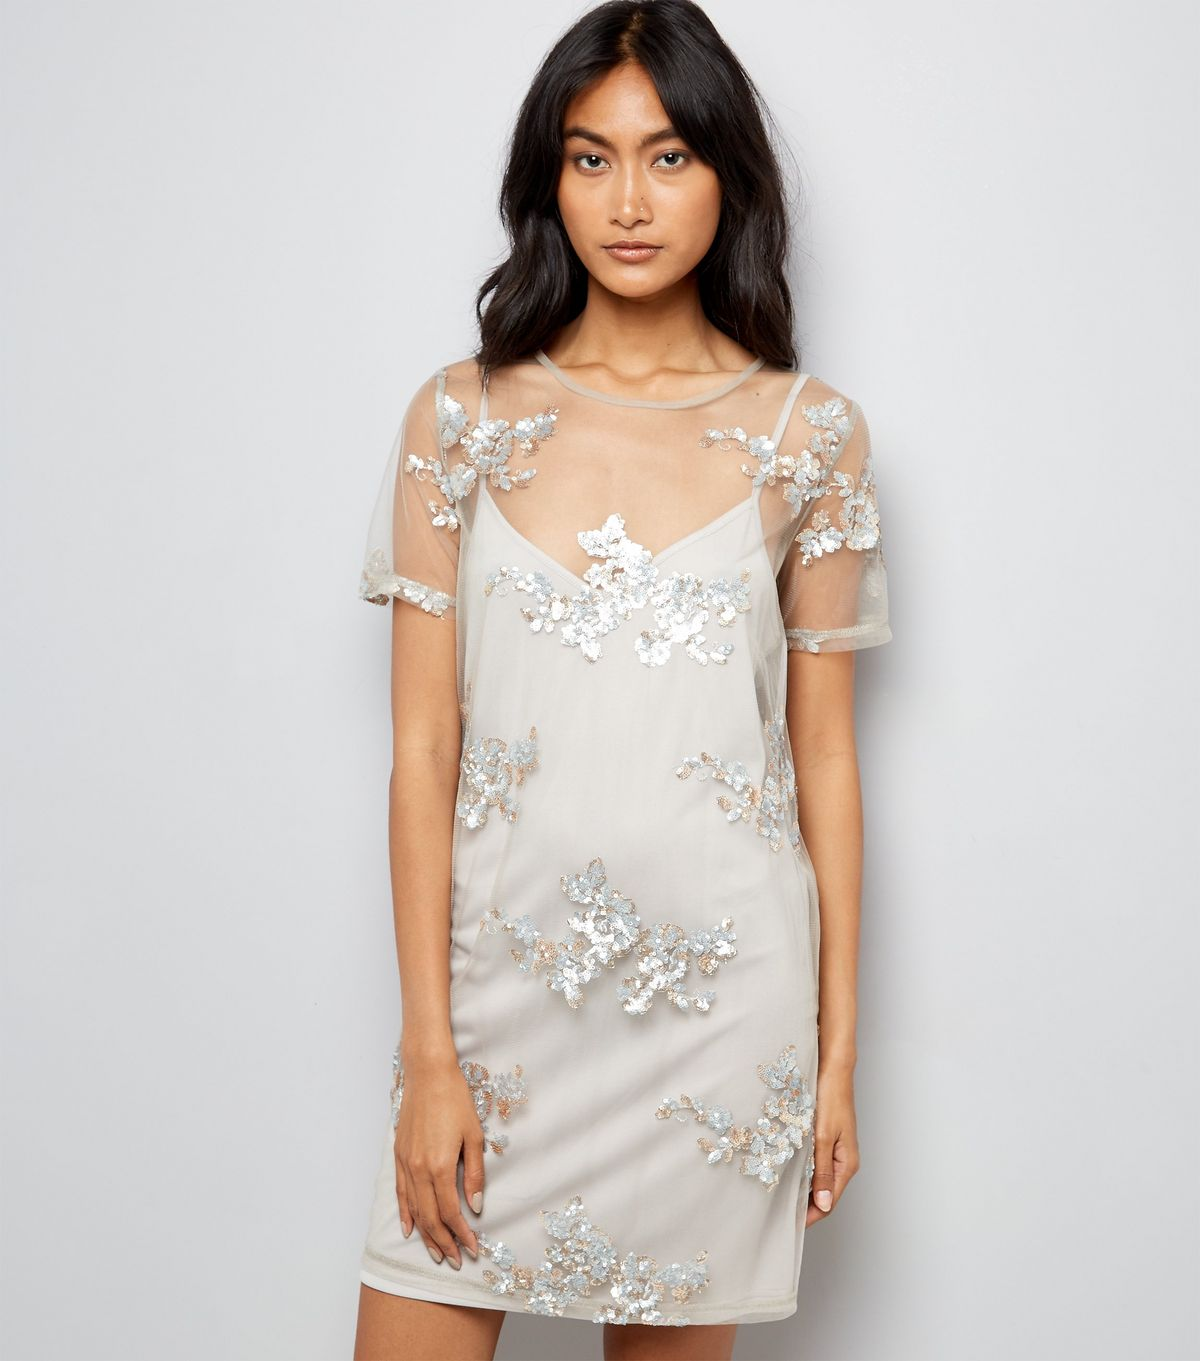 Perfect Christmas Party Dress: The Perfect Christmas Party Dress Under €40 Just Landed In